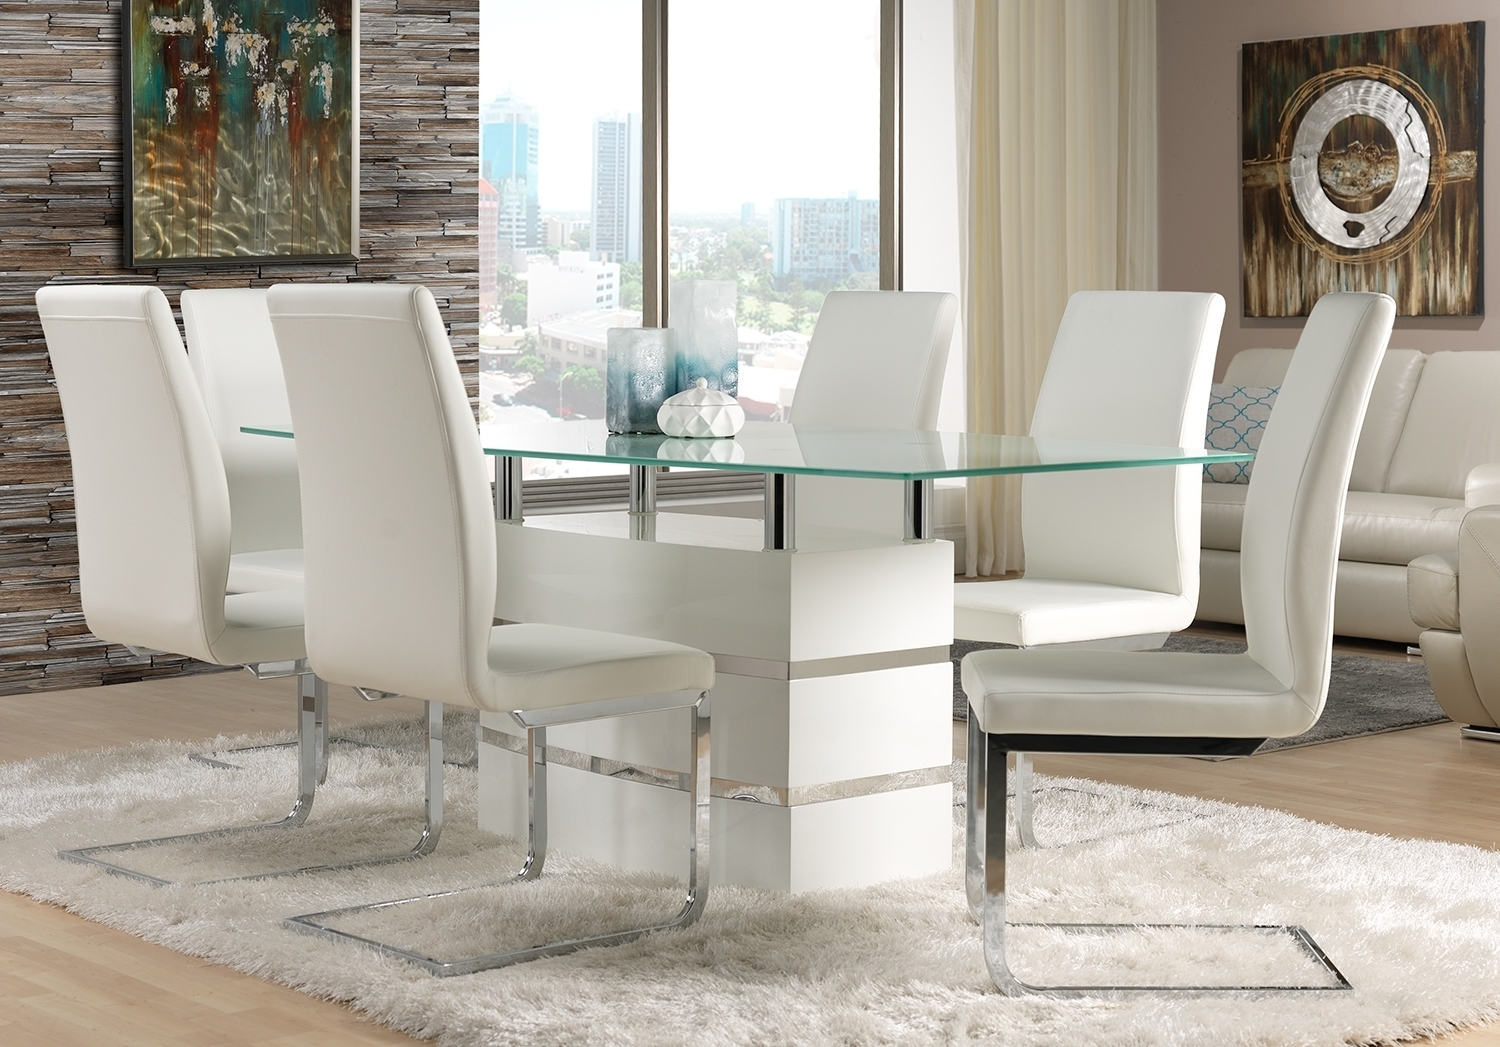 Chair Fabulous Glass Dining Table And White Leather Dining Chair With Regard To Favorite Glass Dining Tables And Leather Chairs (View 4 of 25)